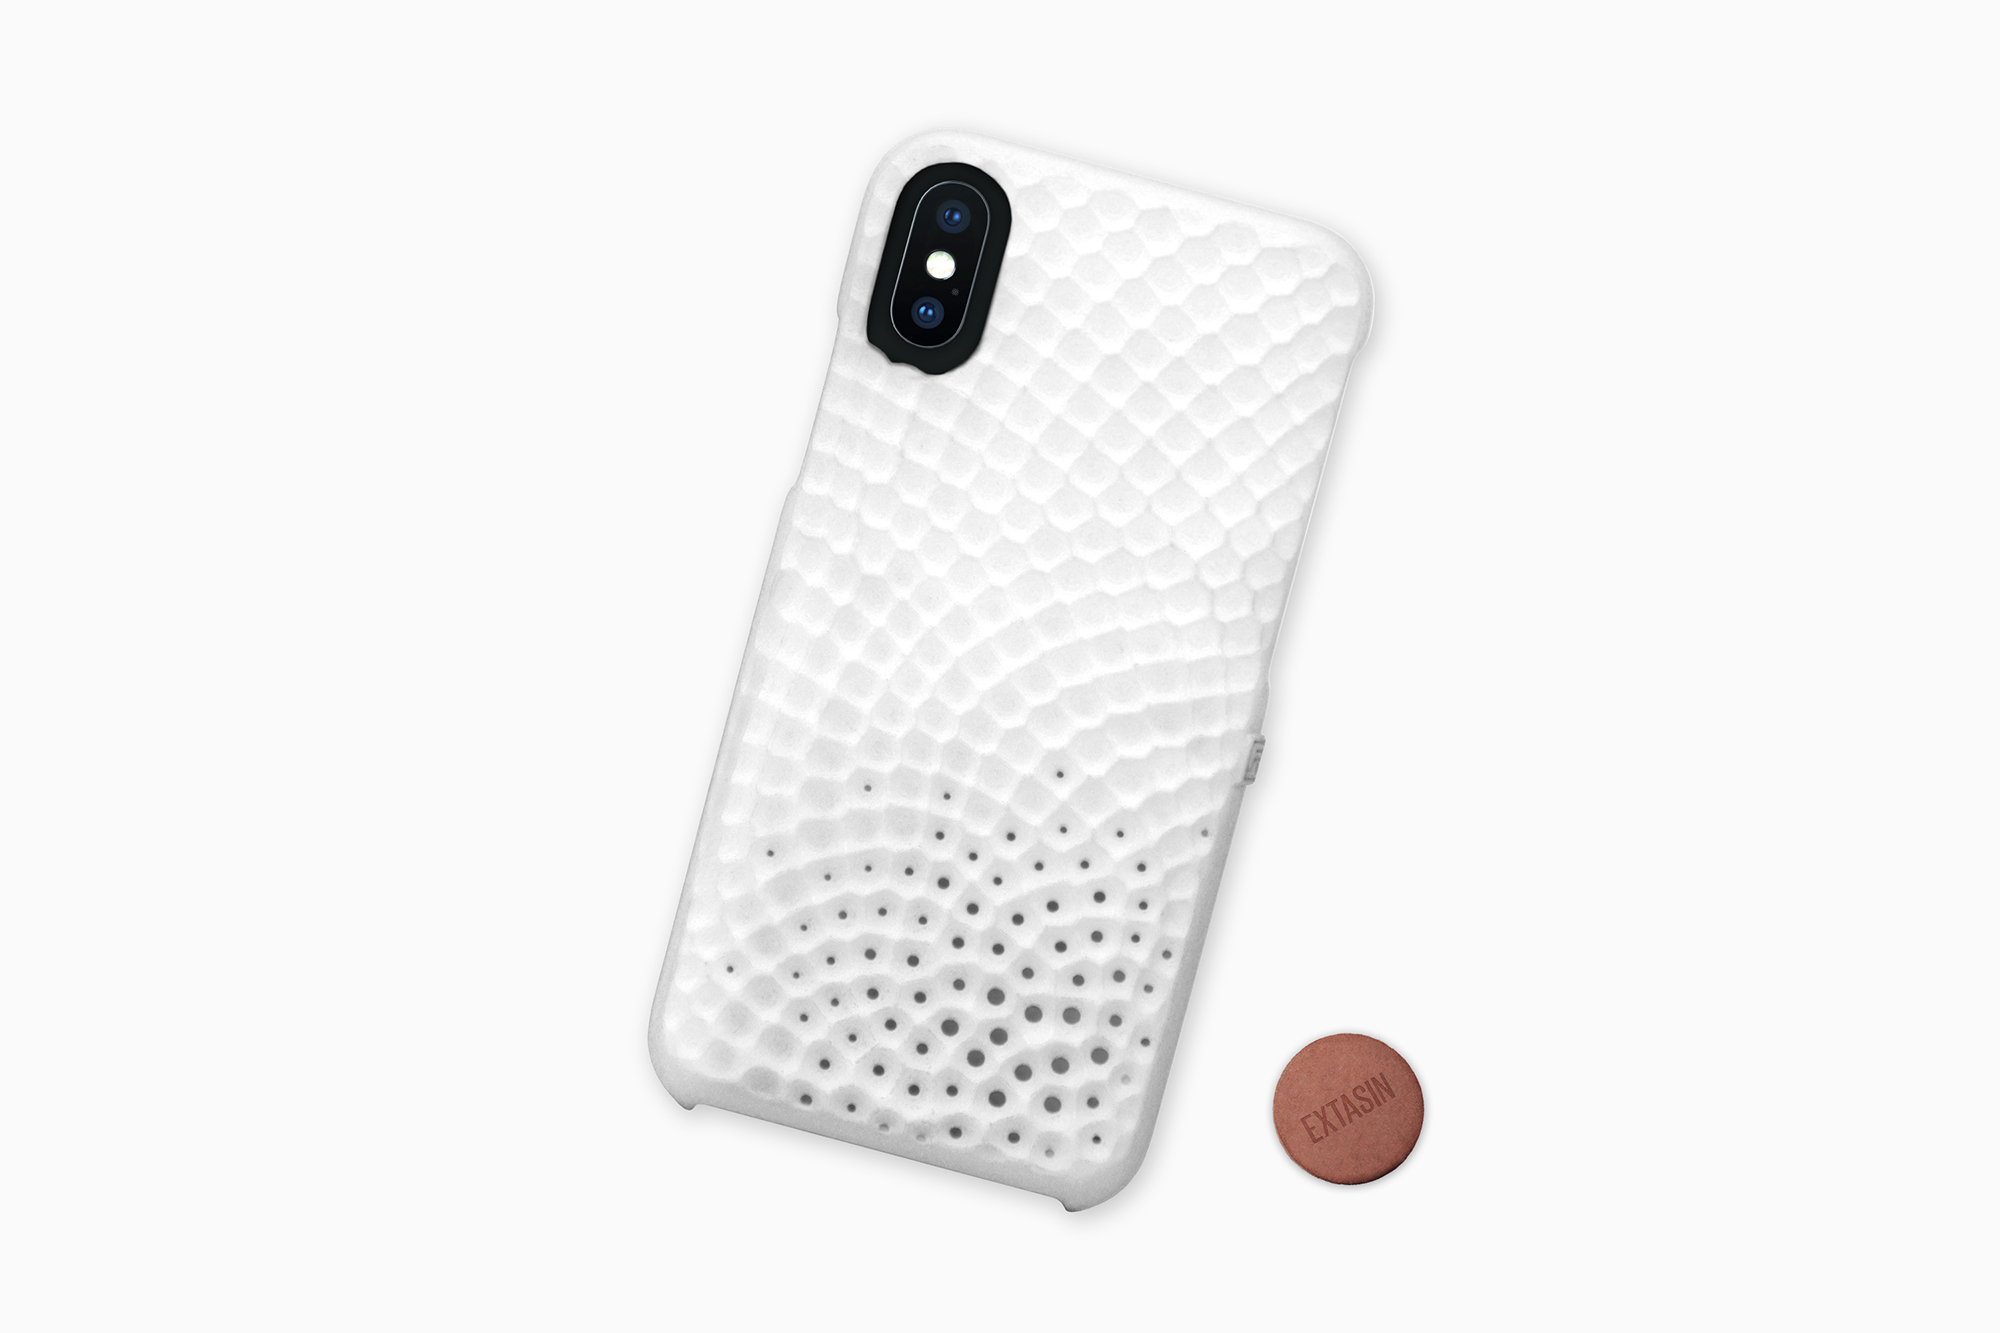 Stonework Perfume Case for iPhone with ceramic Extasin coin, Design by Matthijs Kok for Freshfiber